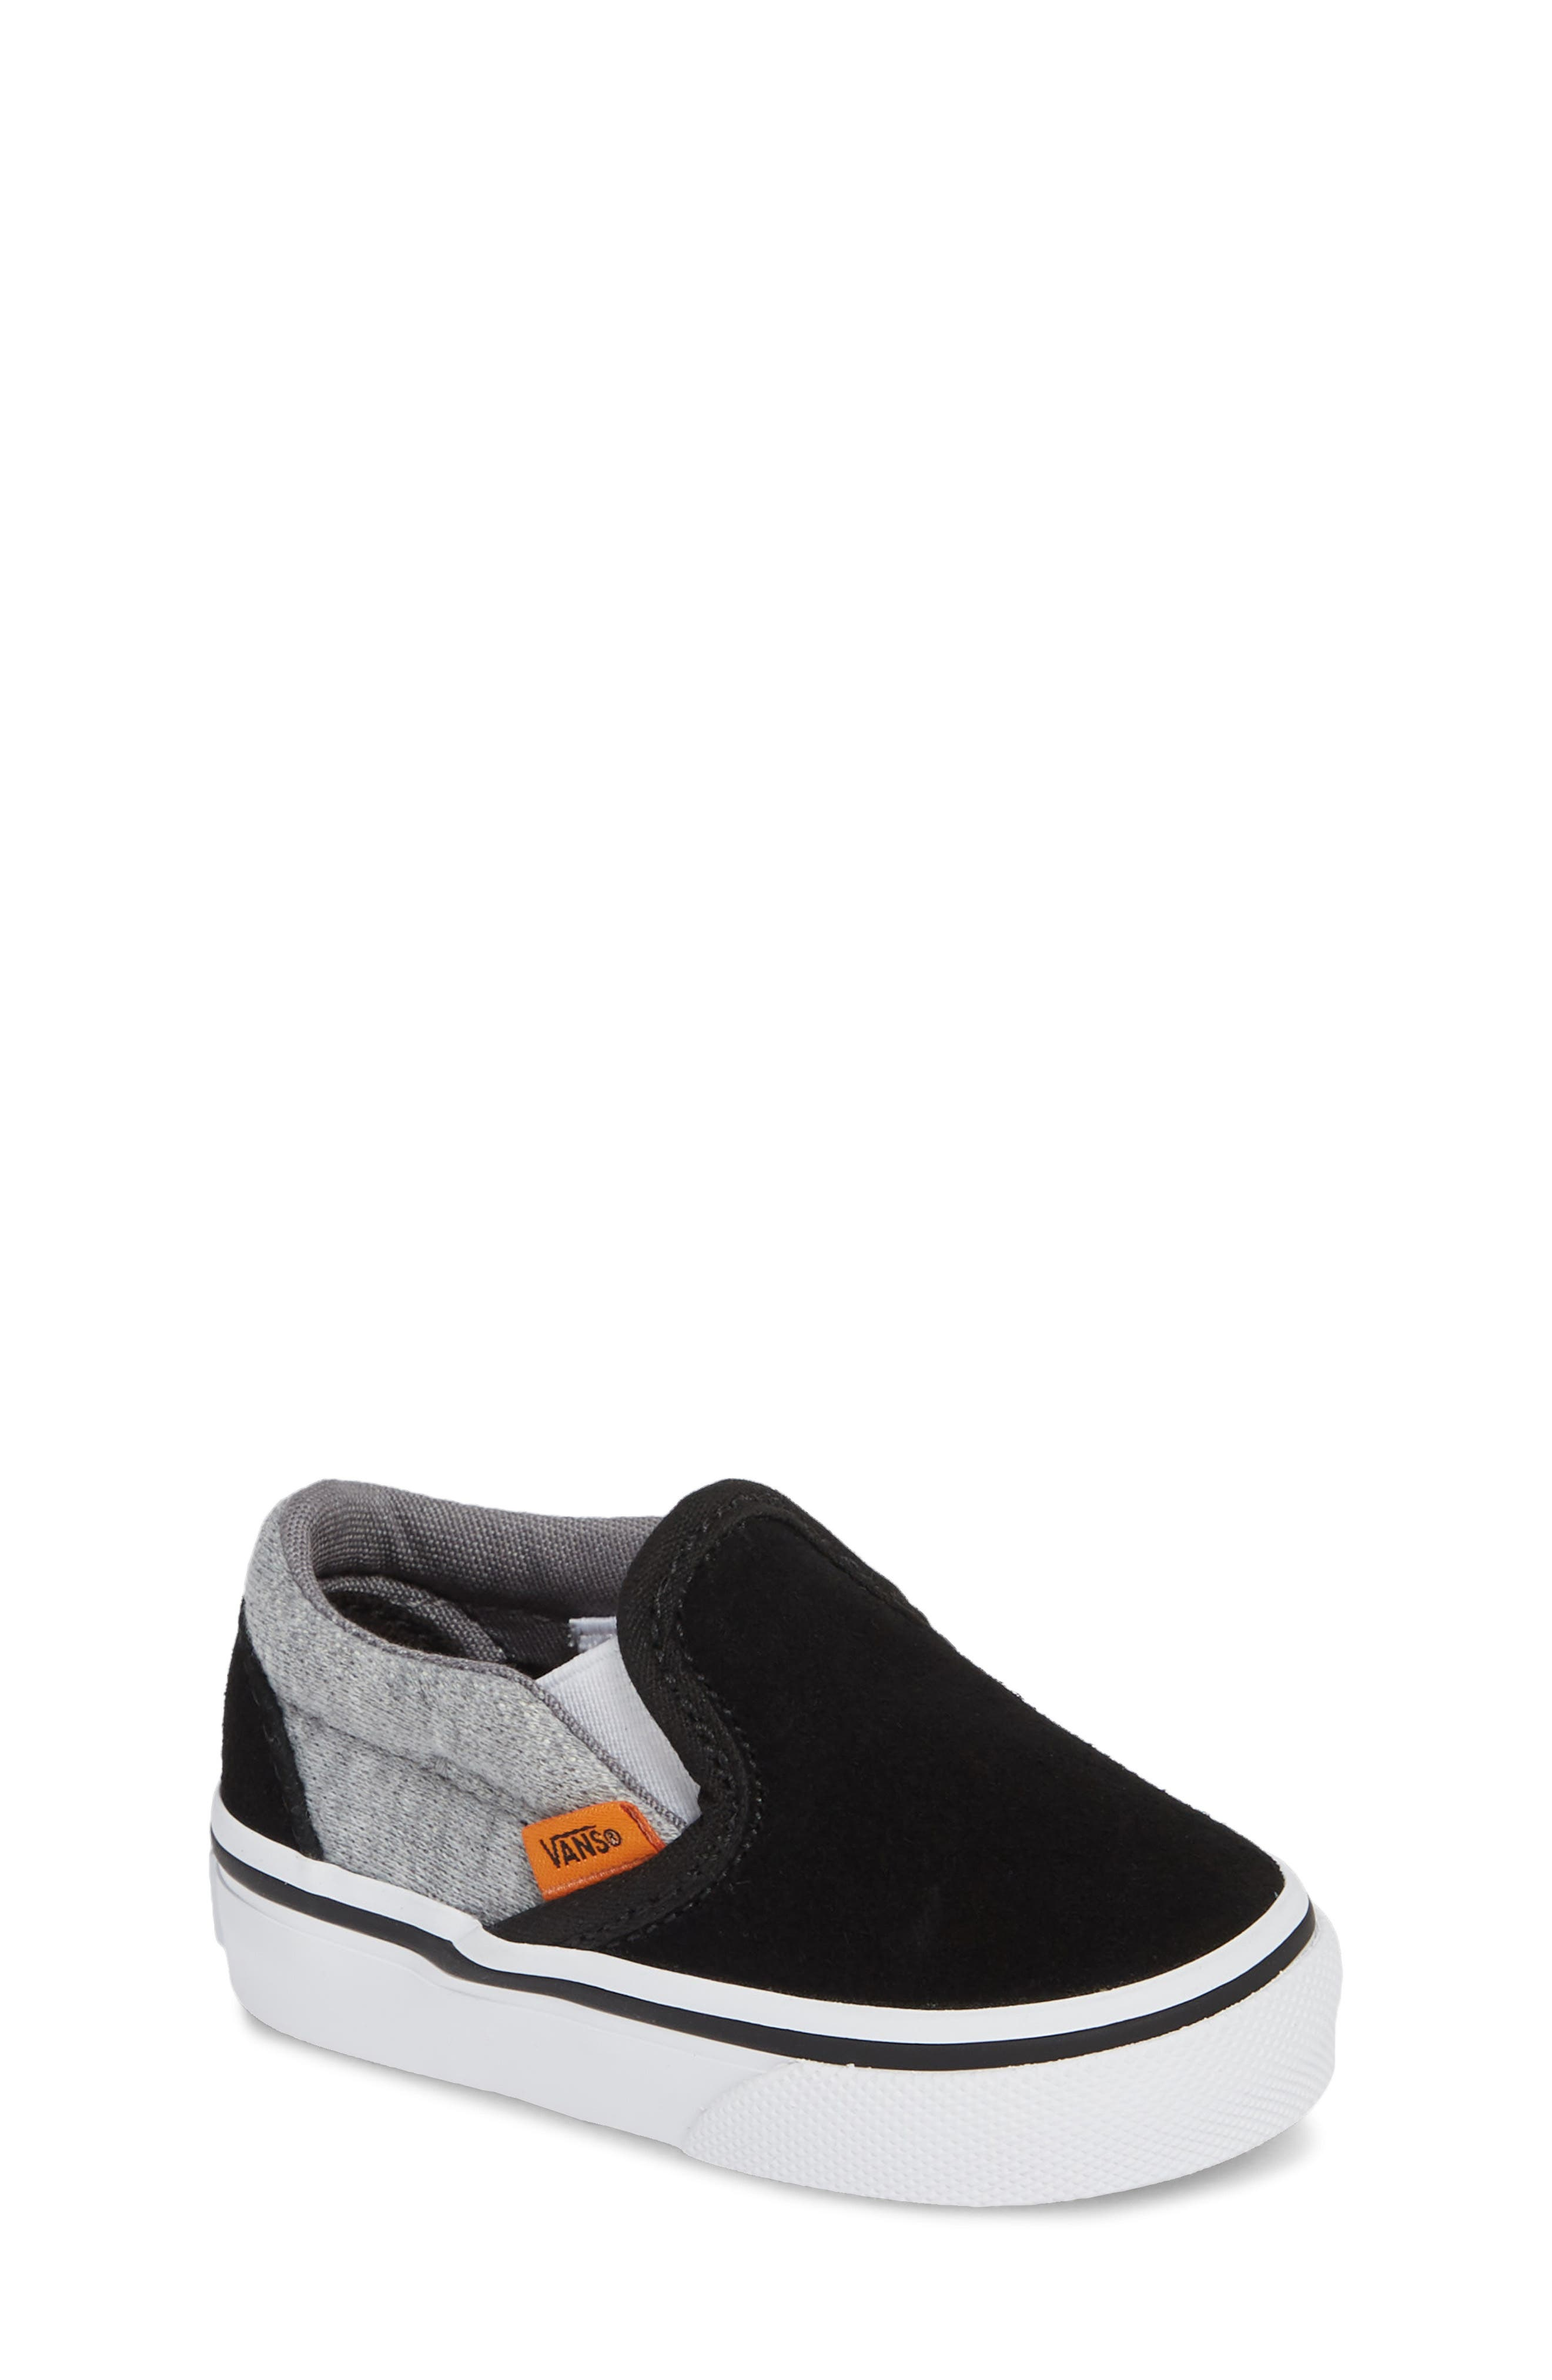 'Classic' Slip-On,                         Main,                         color, SUEDE AND JERSEY GRAY/ BLACK